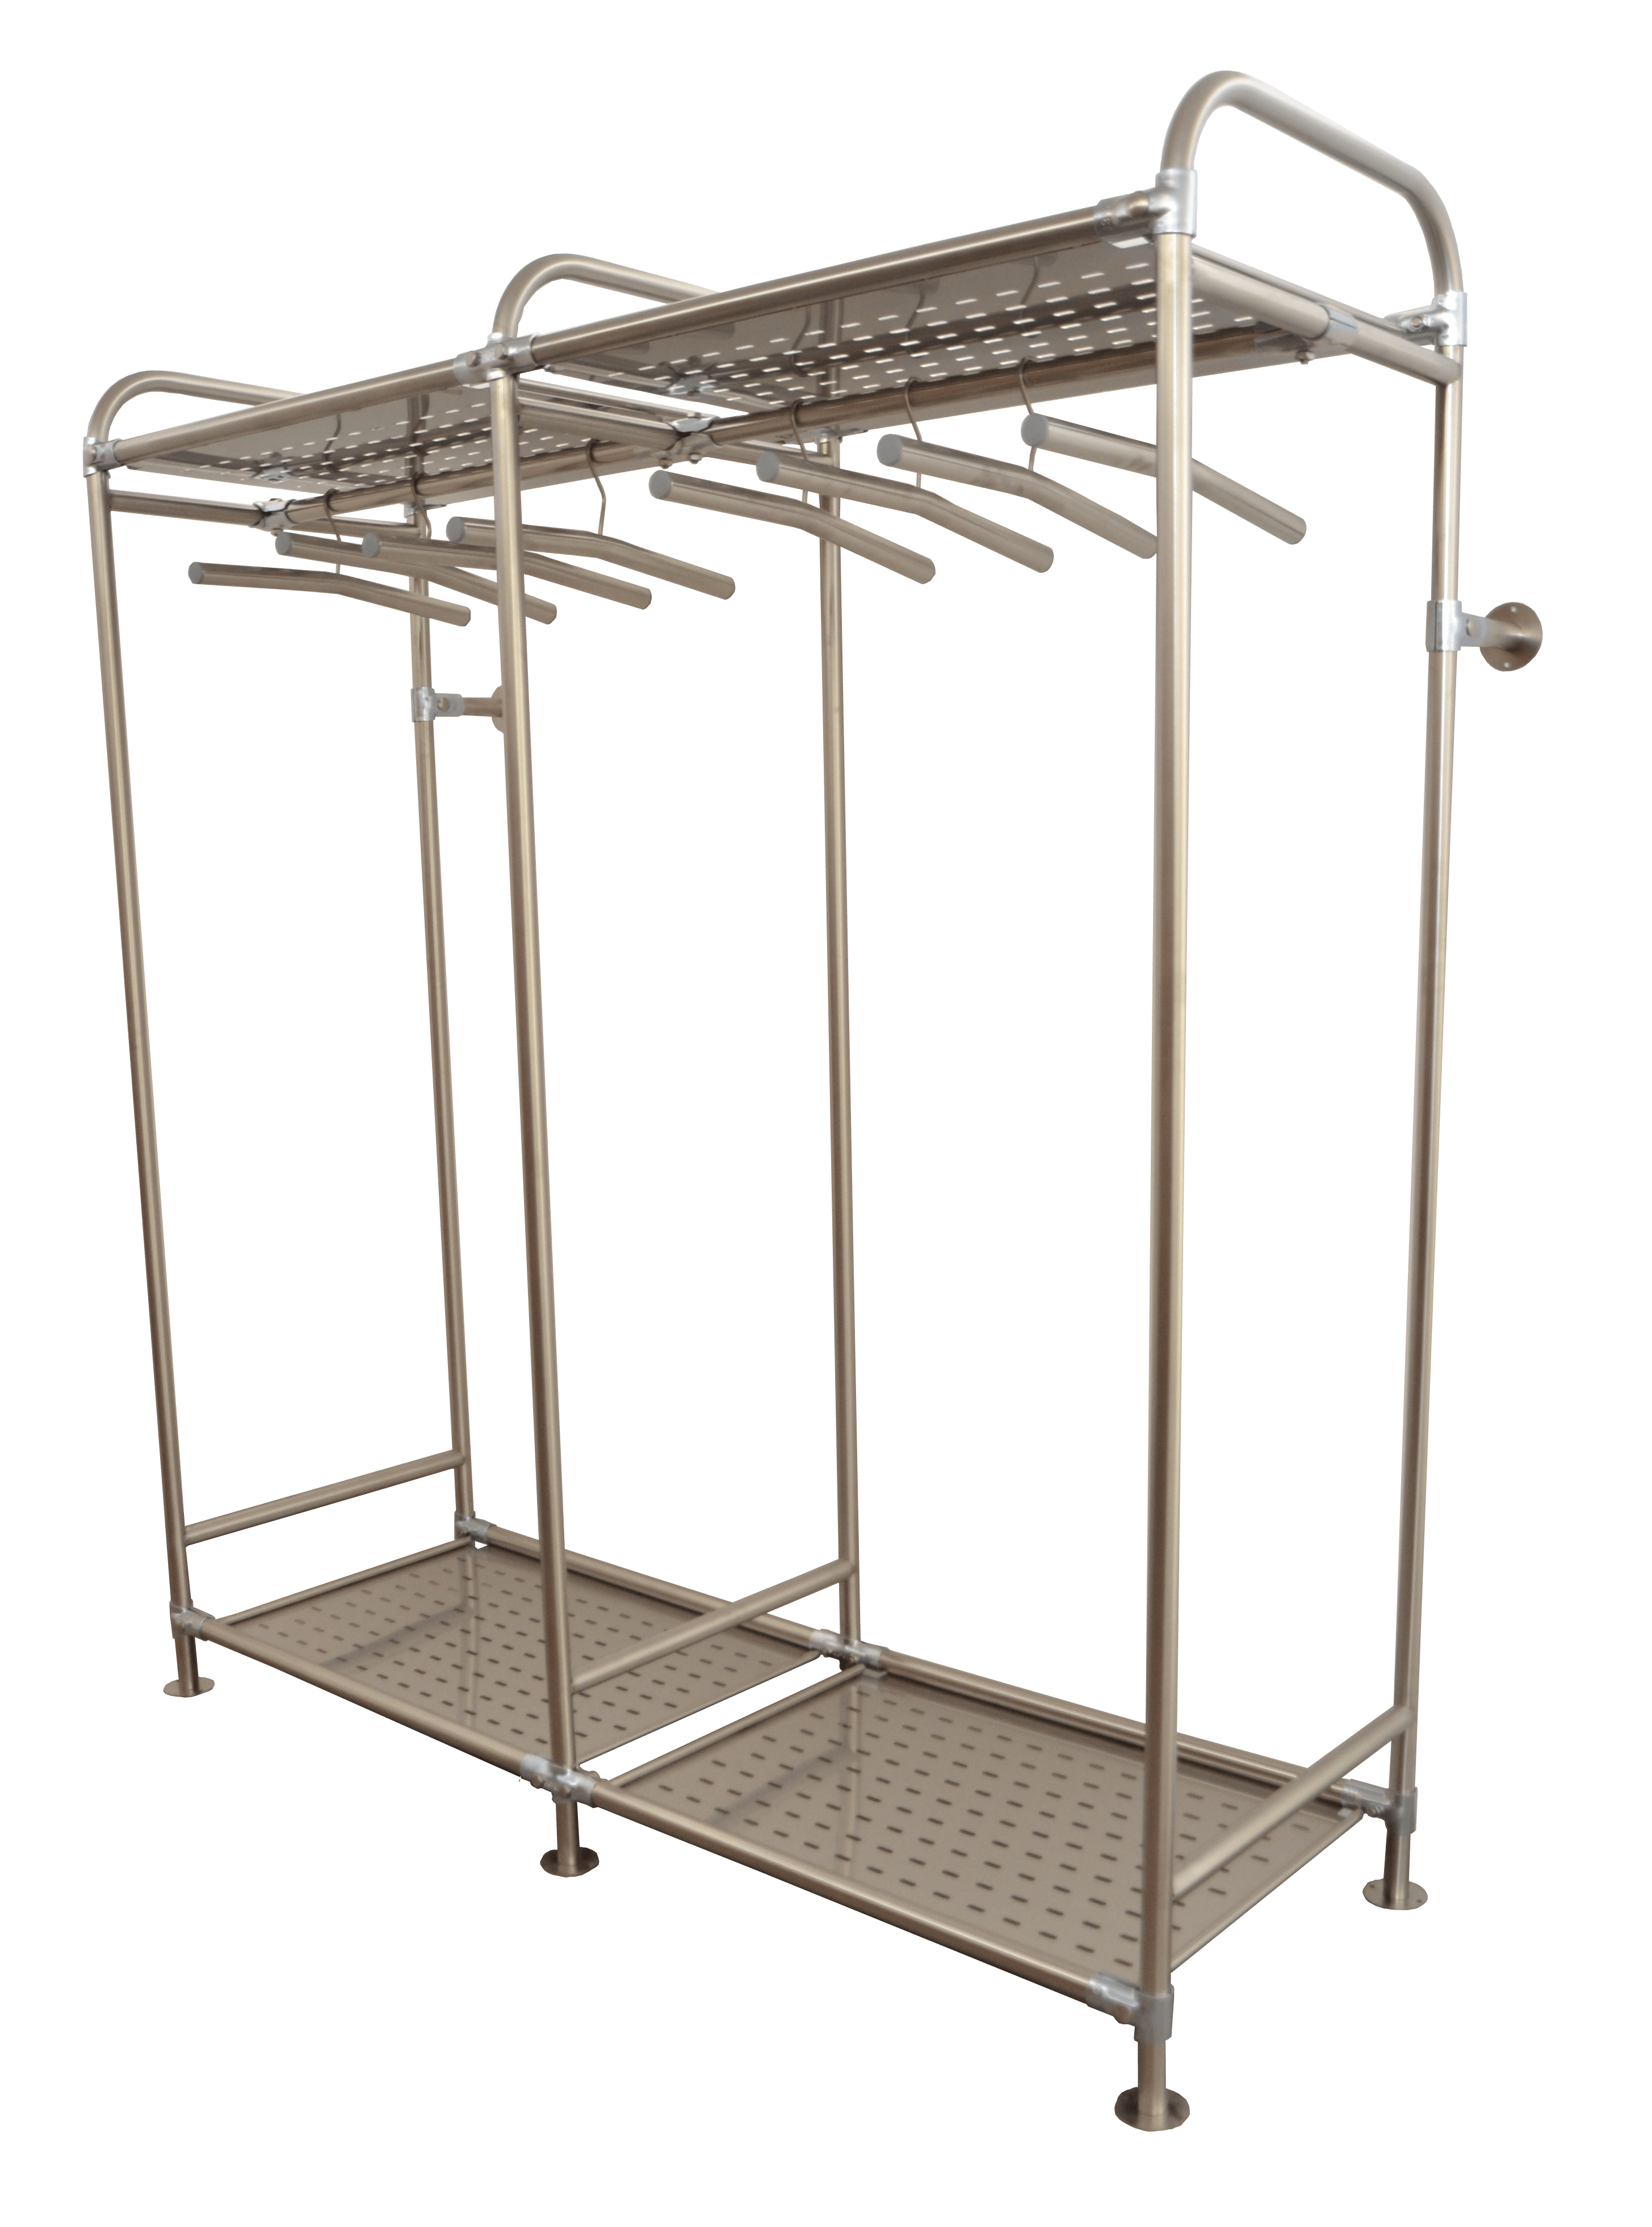 stainless steel rack to collect light workwear